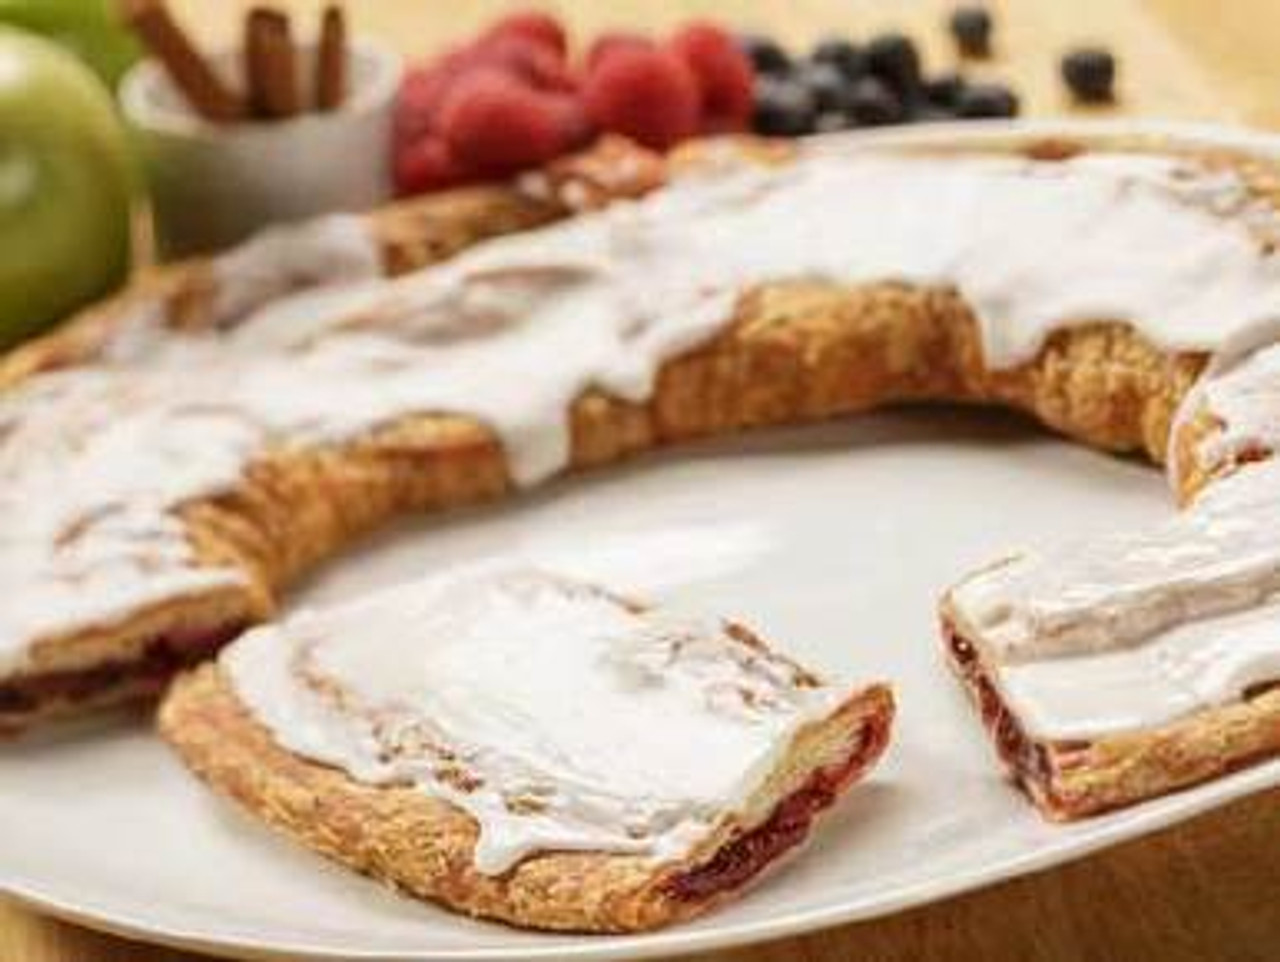 Danish traditional flavor Almond Kringle available on WisconsinMade Artisan Collective